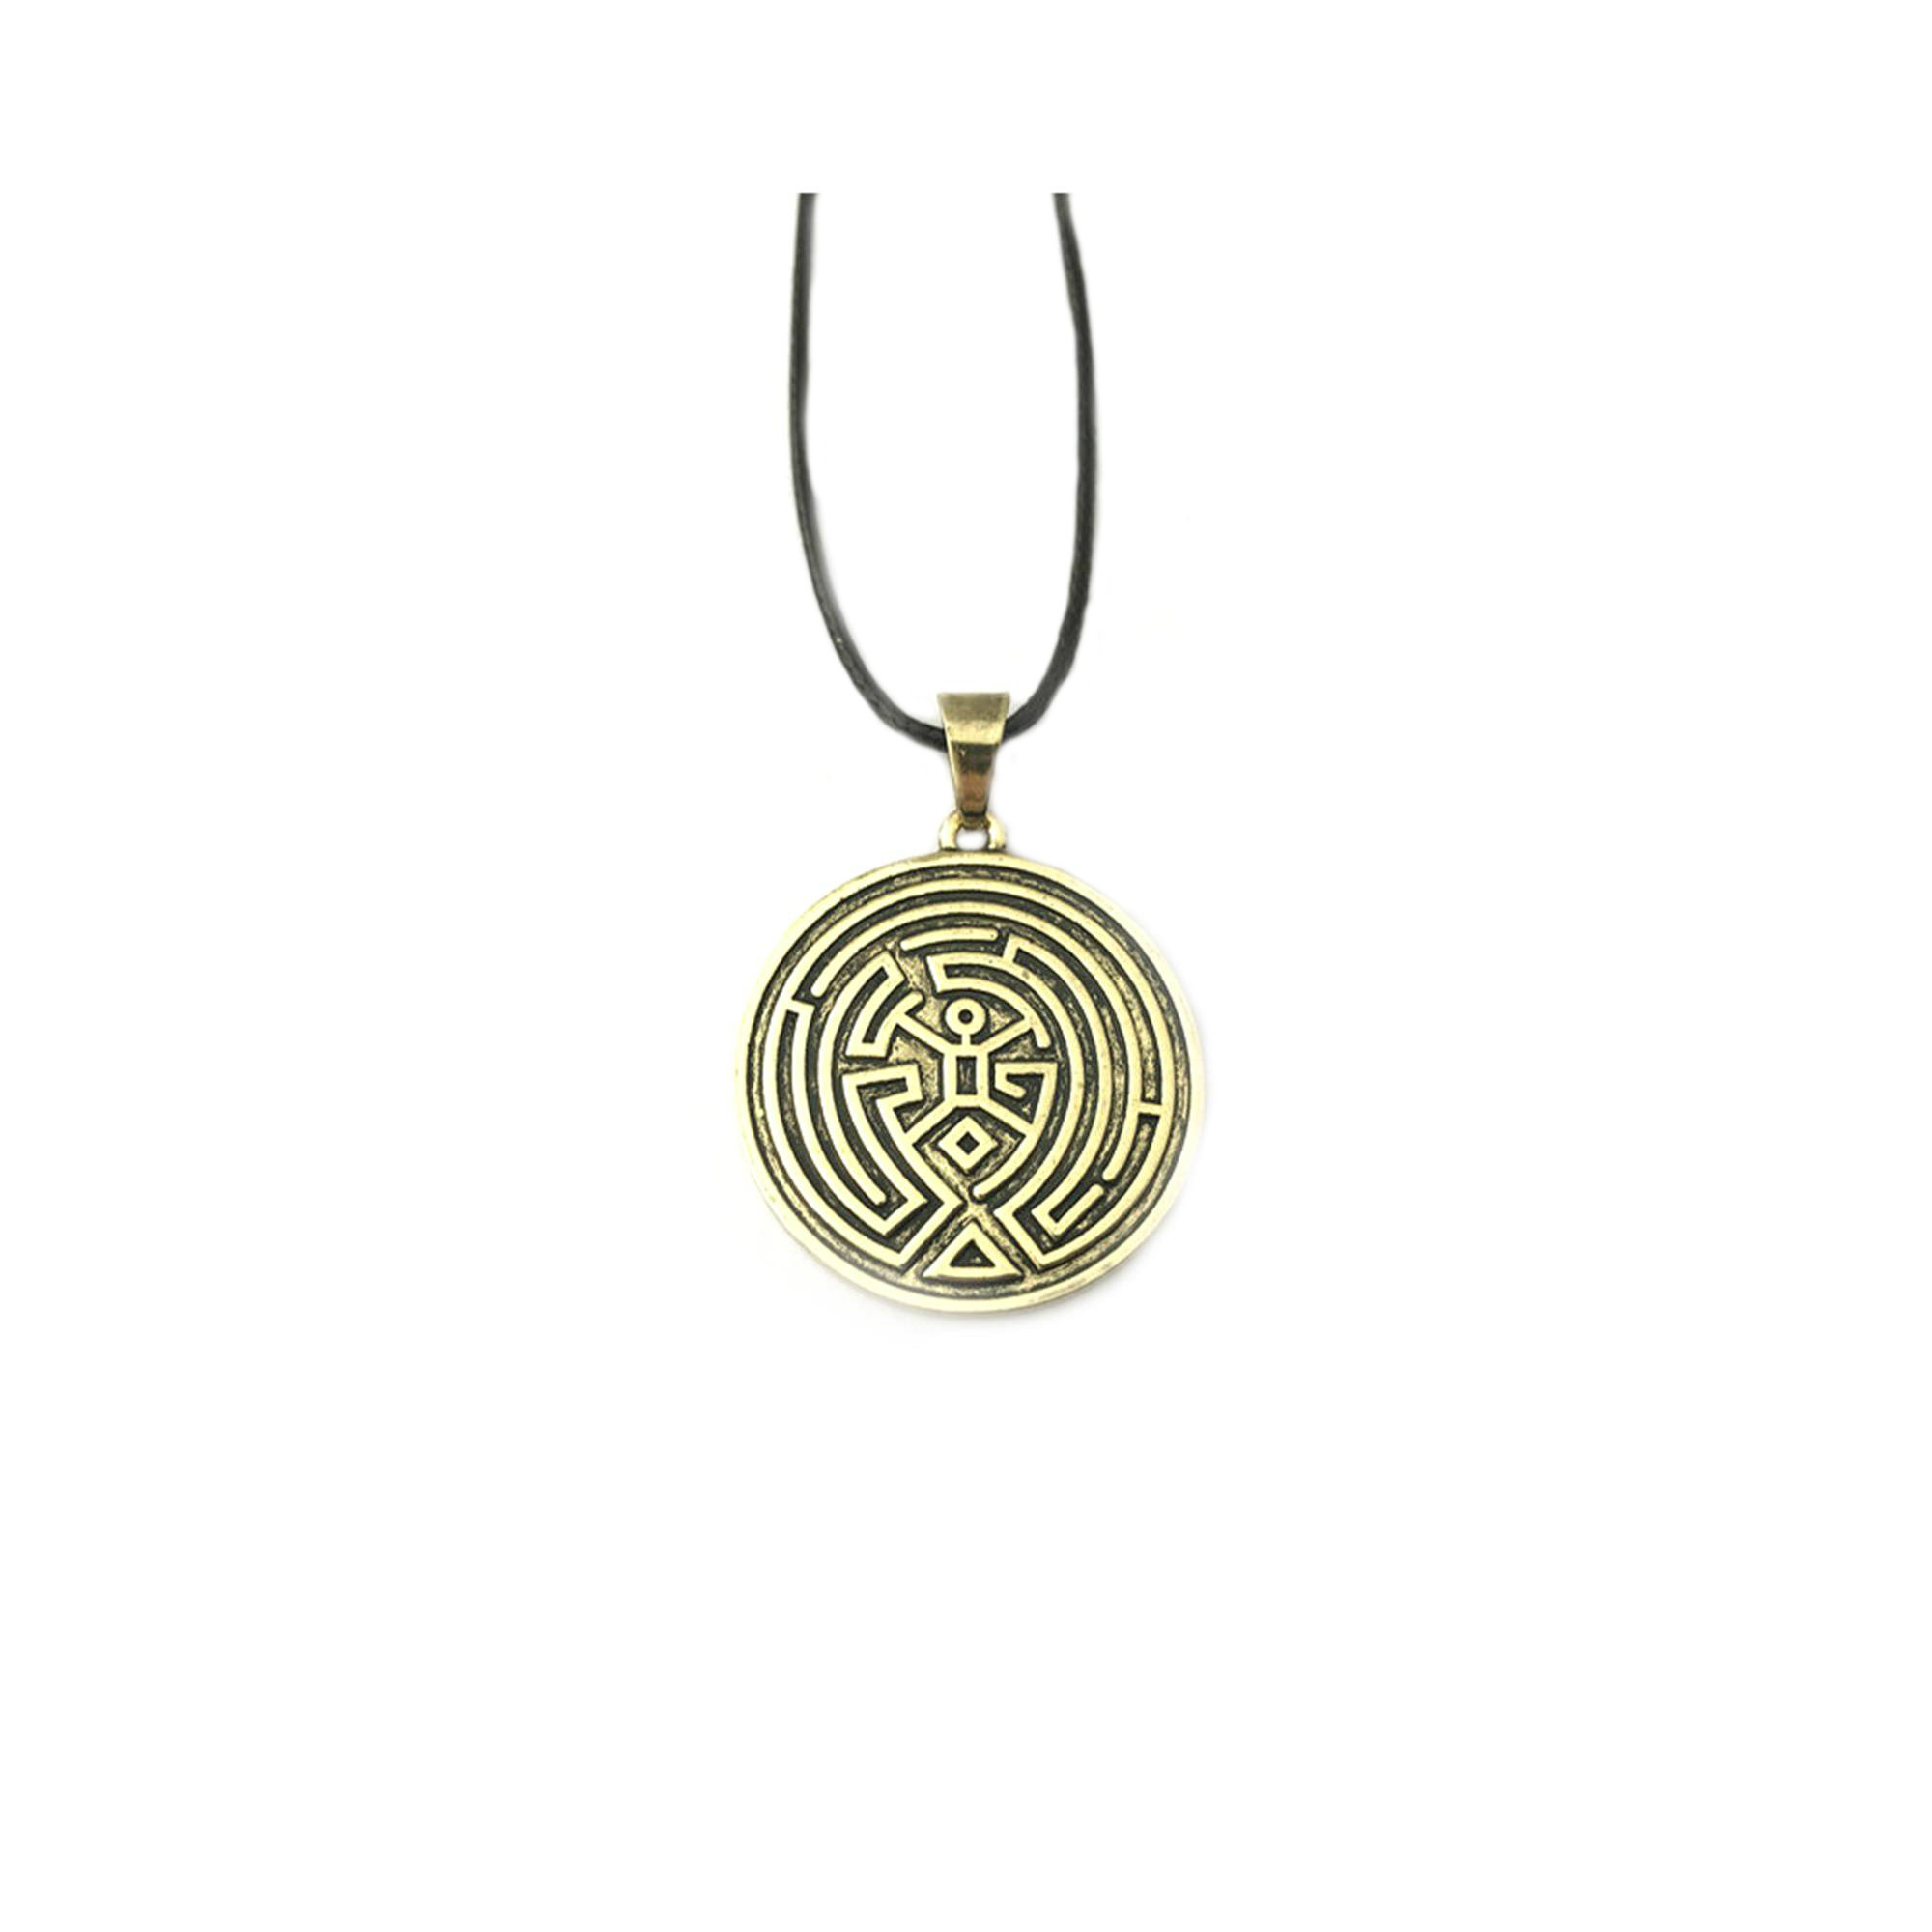 Westword - Maze - Necklace Pendant American Science Fiction Western TV Series Cosplay by Athena Brand